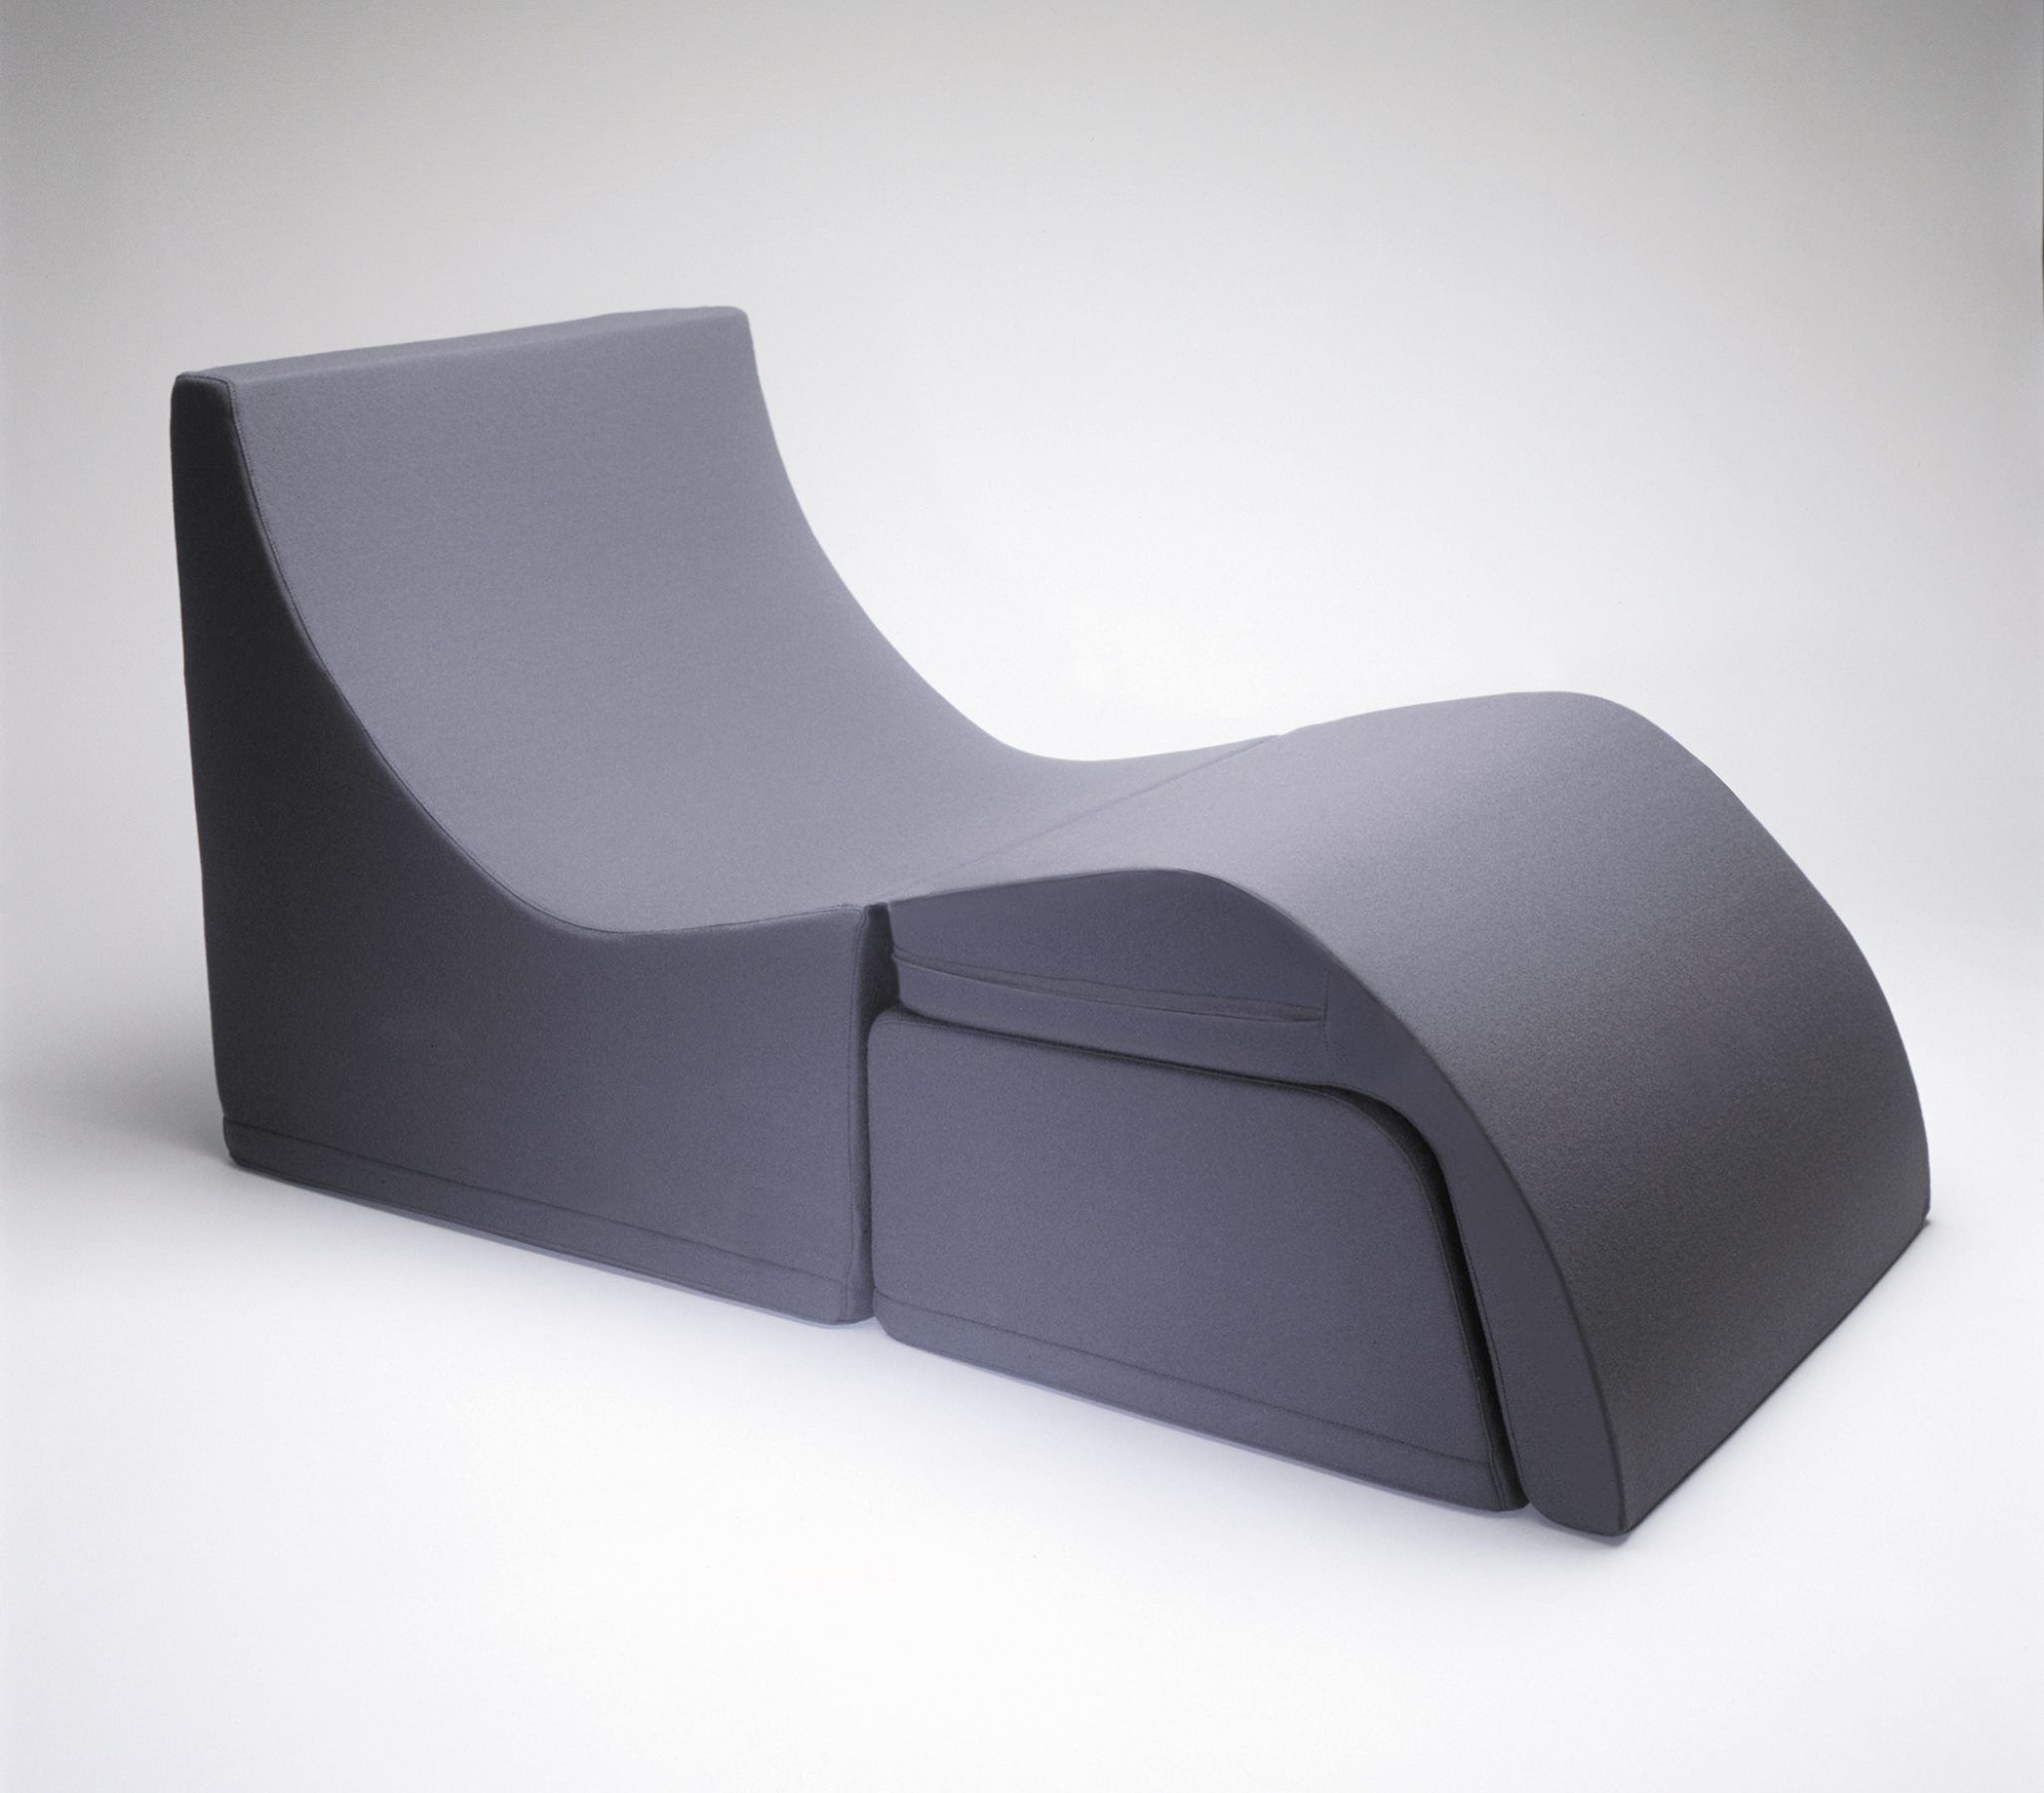 Q block for Umbra by Karim Rashid | Fold out beds, Furniture